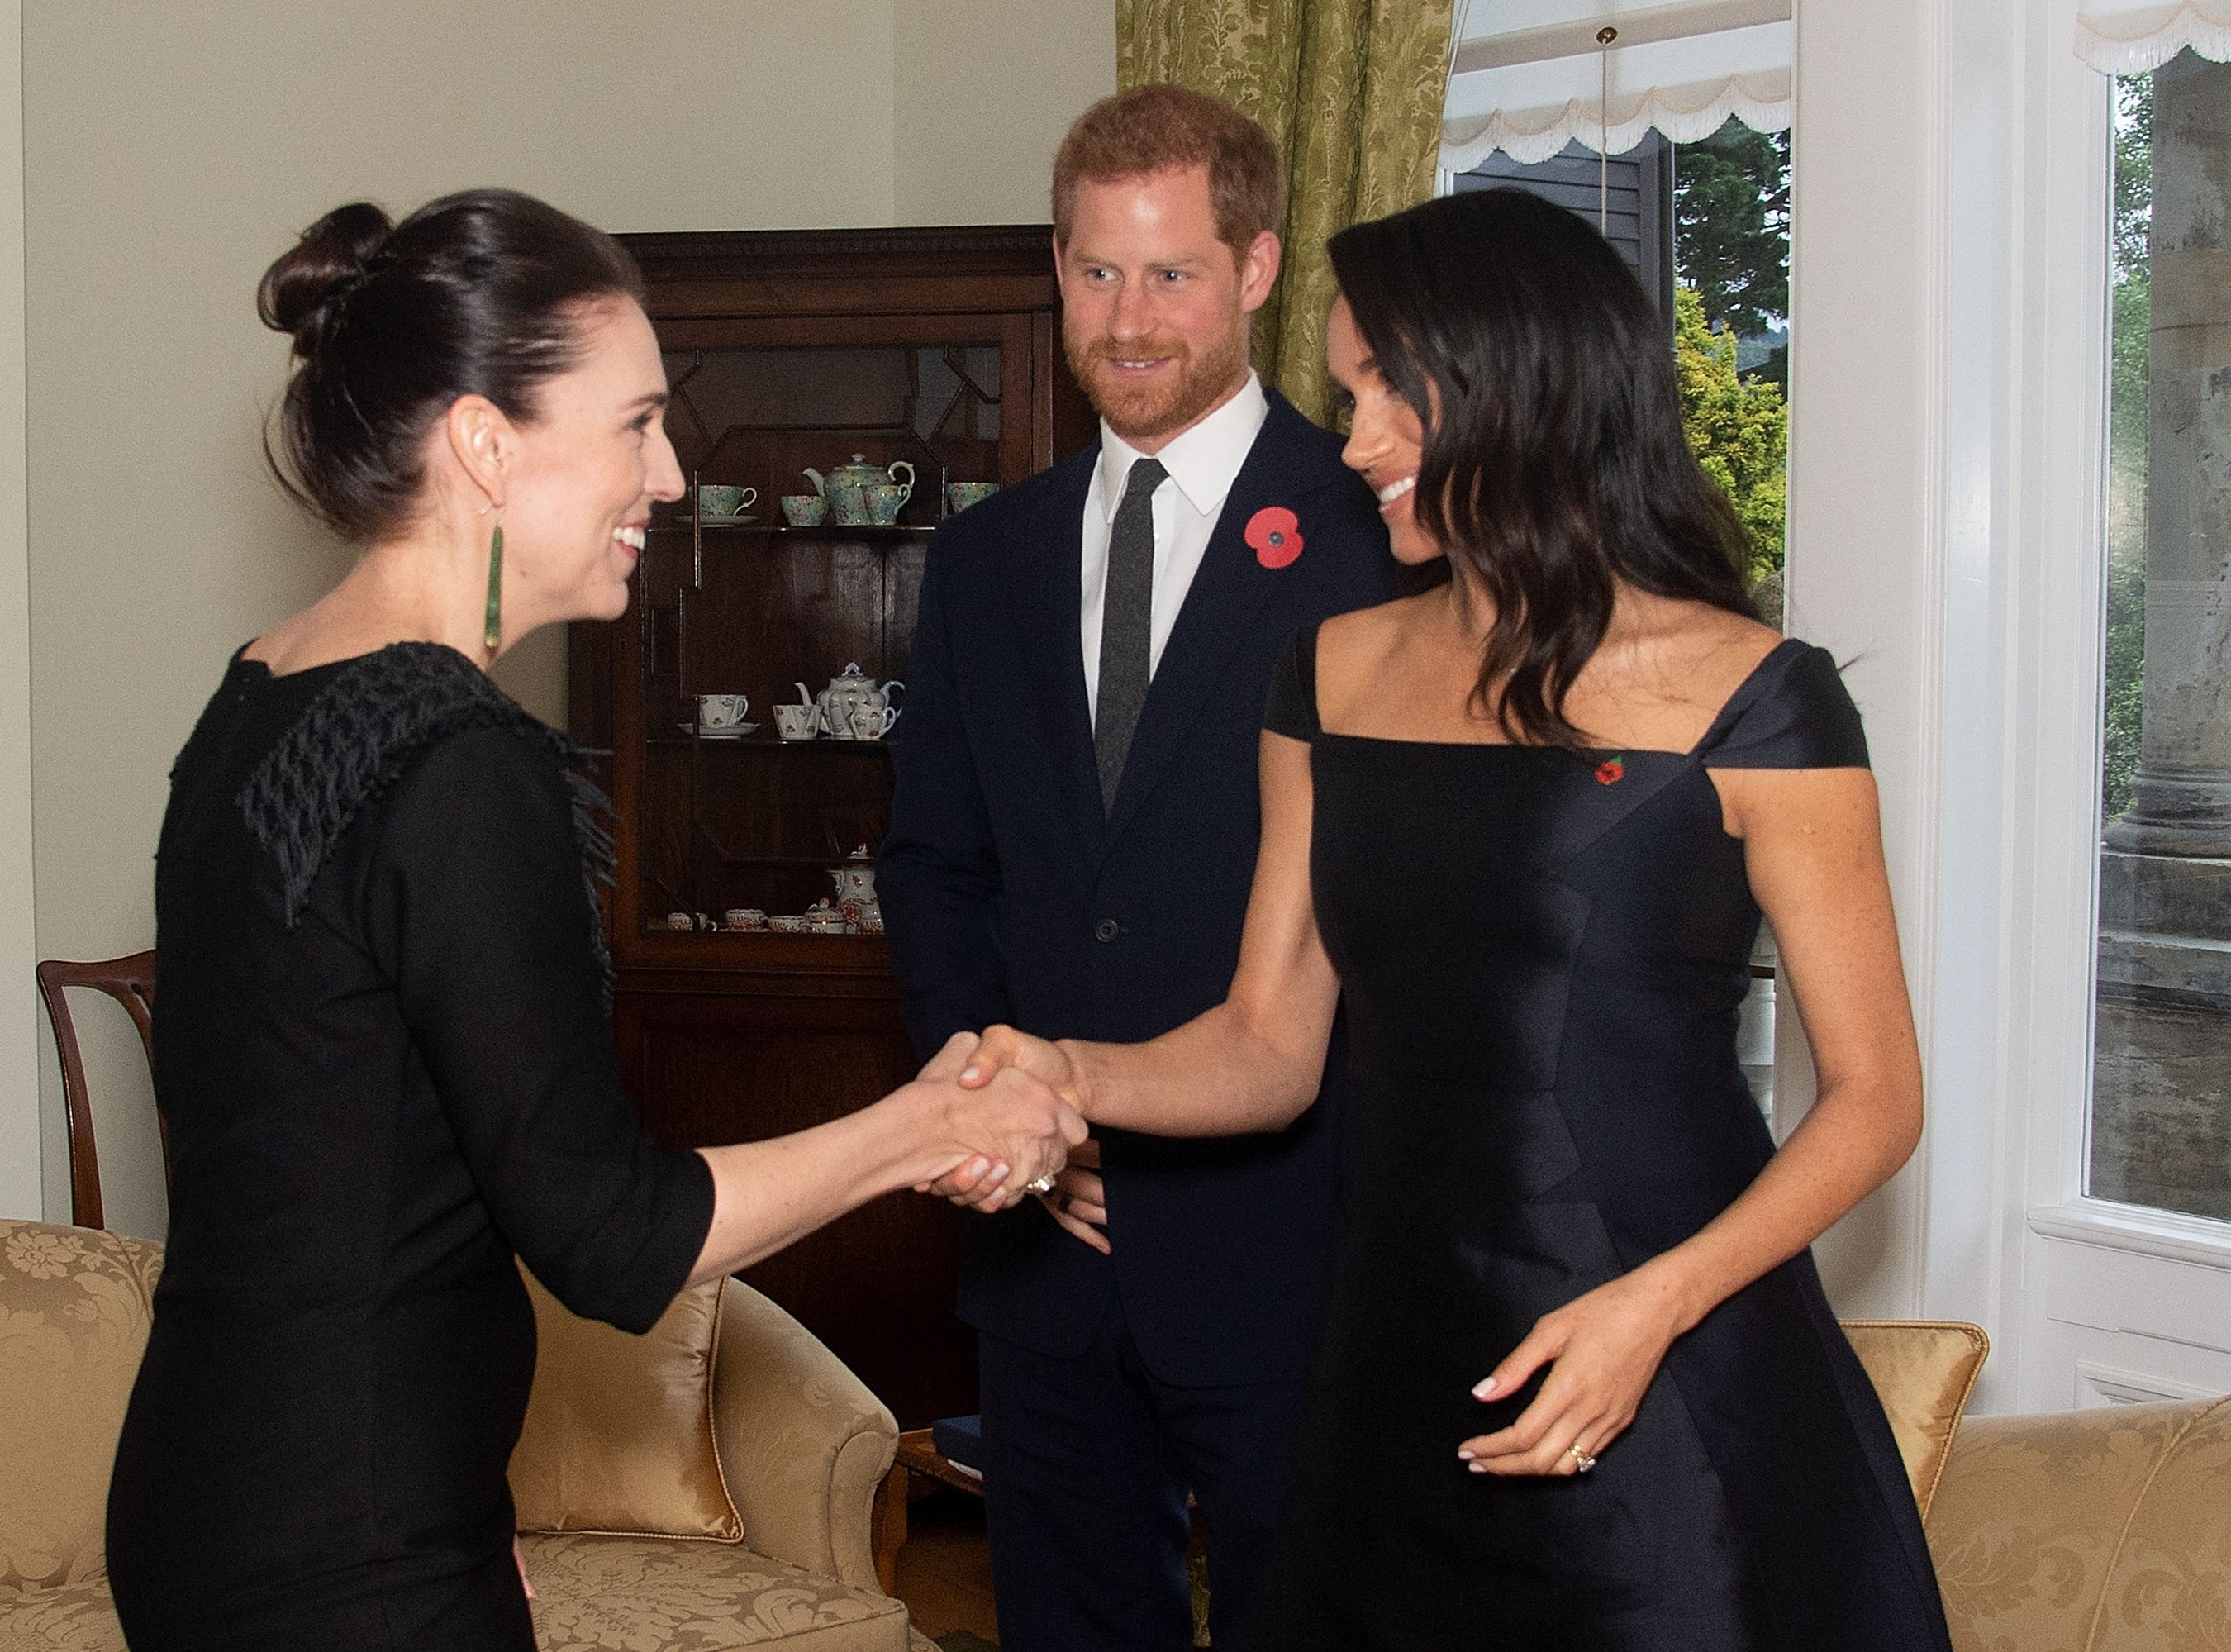 Prince Harry, Duke of Sussex, and Meghan, Duchess of Sussex,  meet with Prime Minister of New Zealand Jacinda Ardern during a call by the Prime Minister at Government House on Oct. 28, 2018 in Wellington, New Zealand.